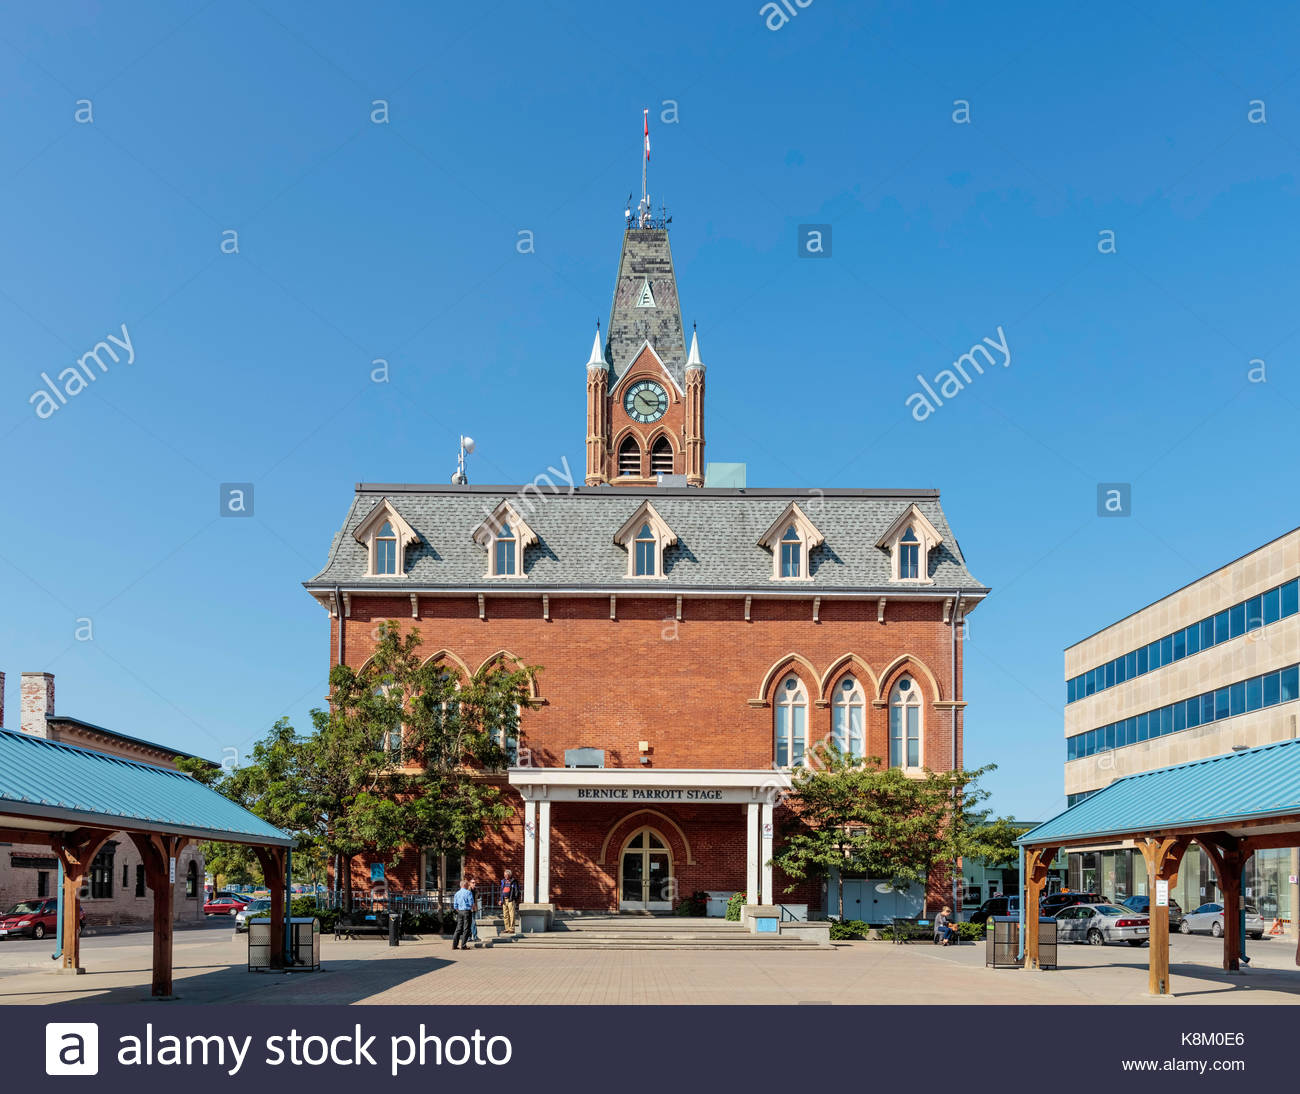 Gothic Revival Stock Photos & Gothic Revival Stock Images